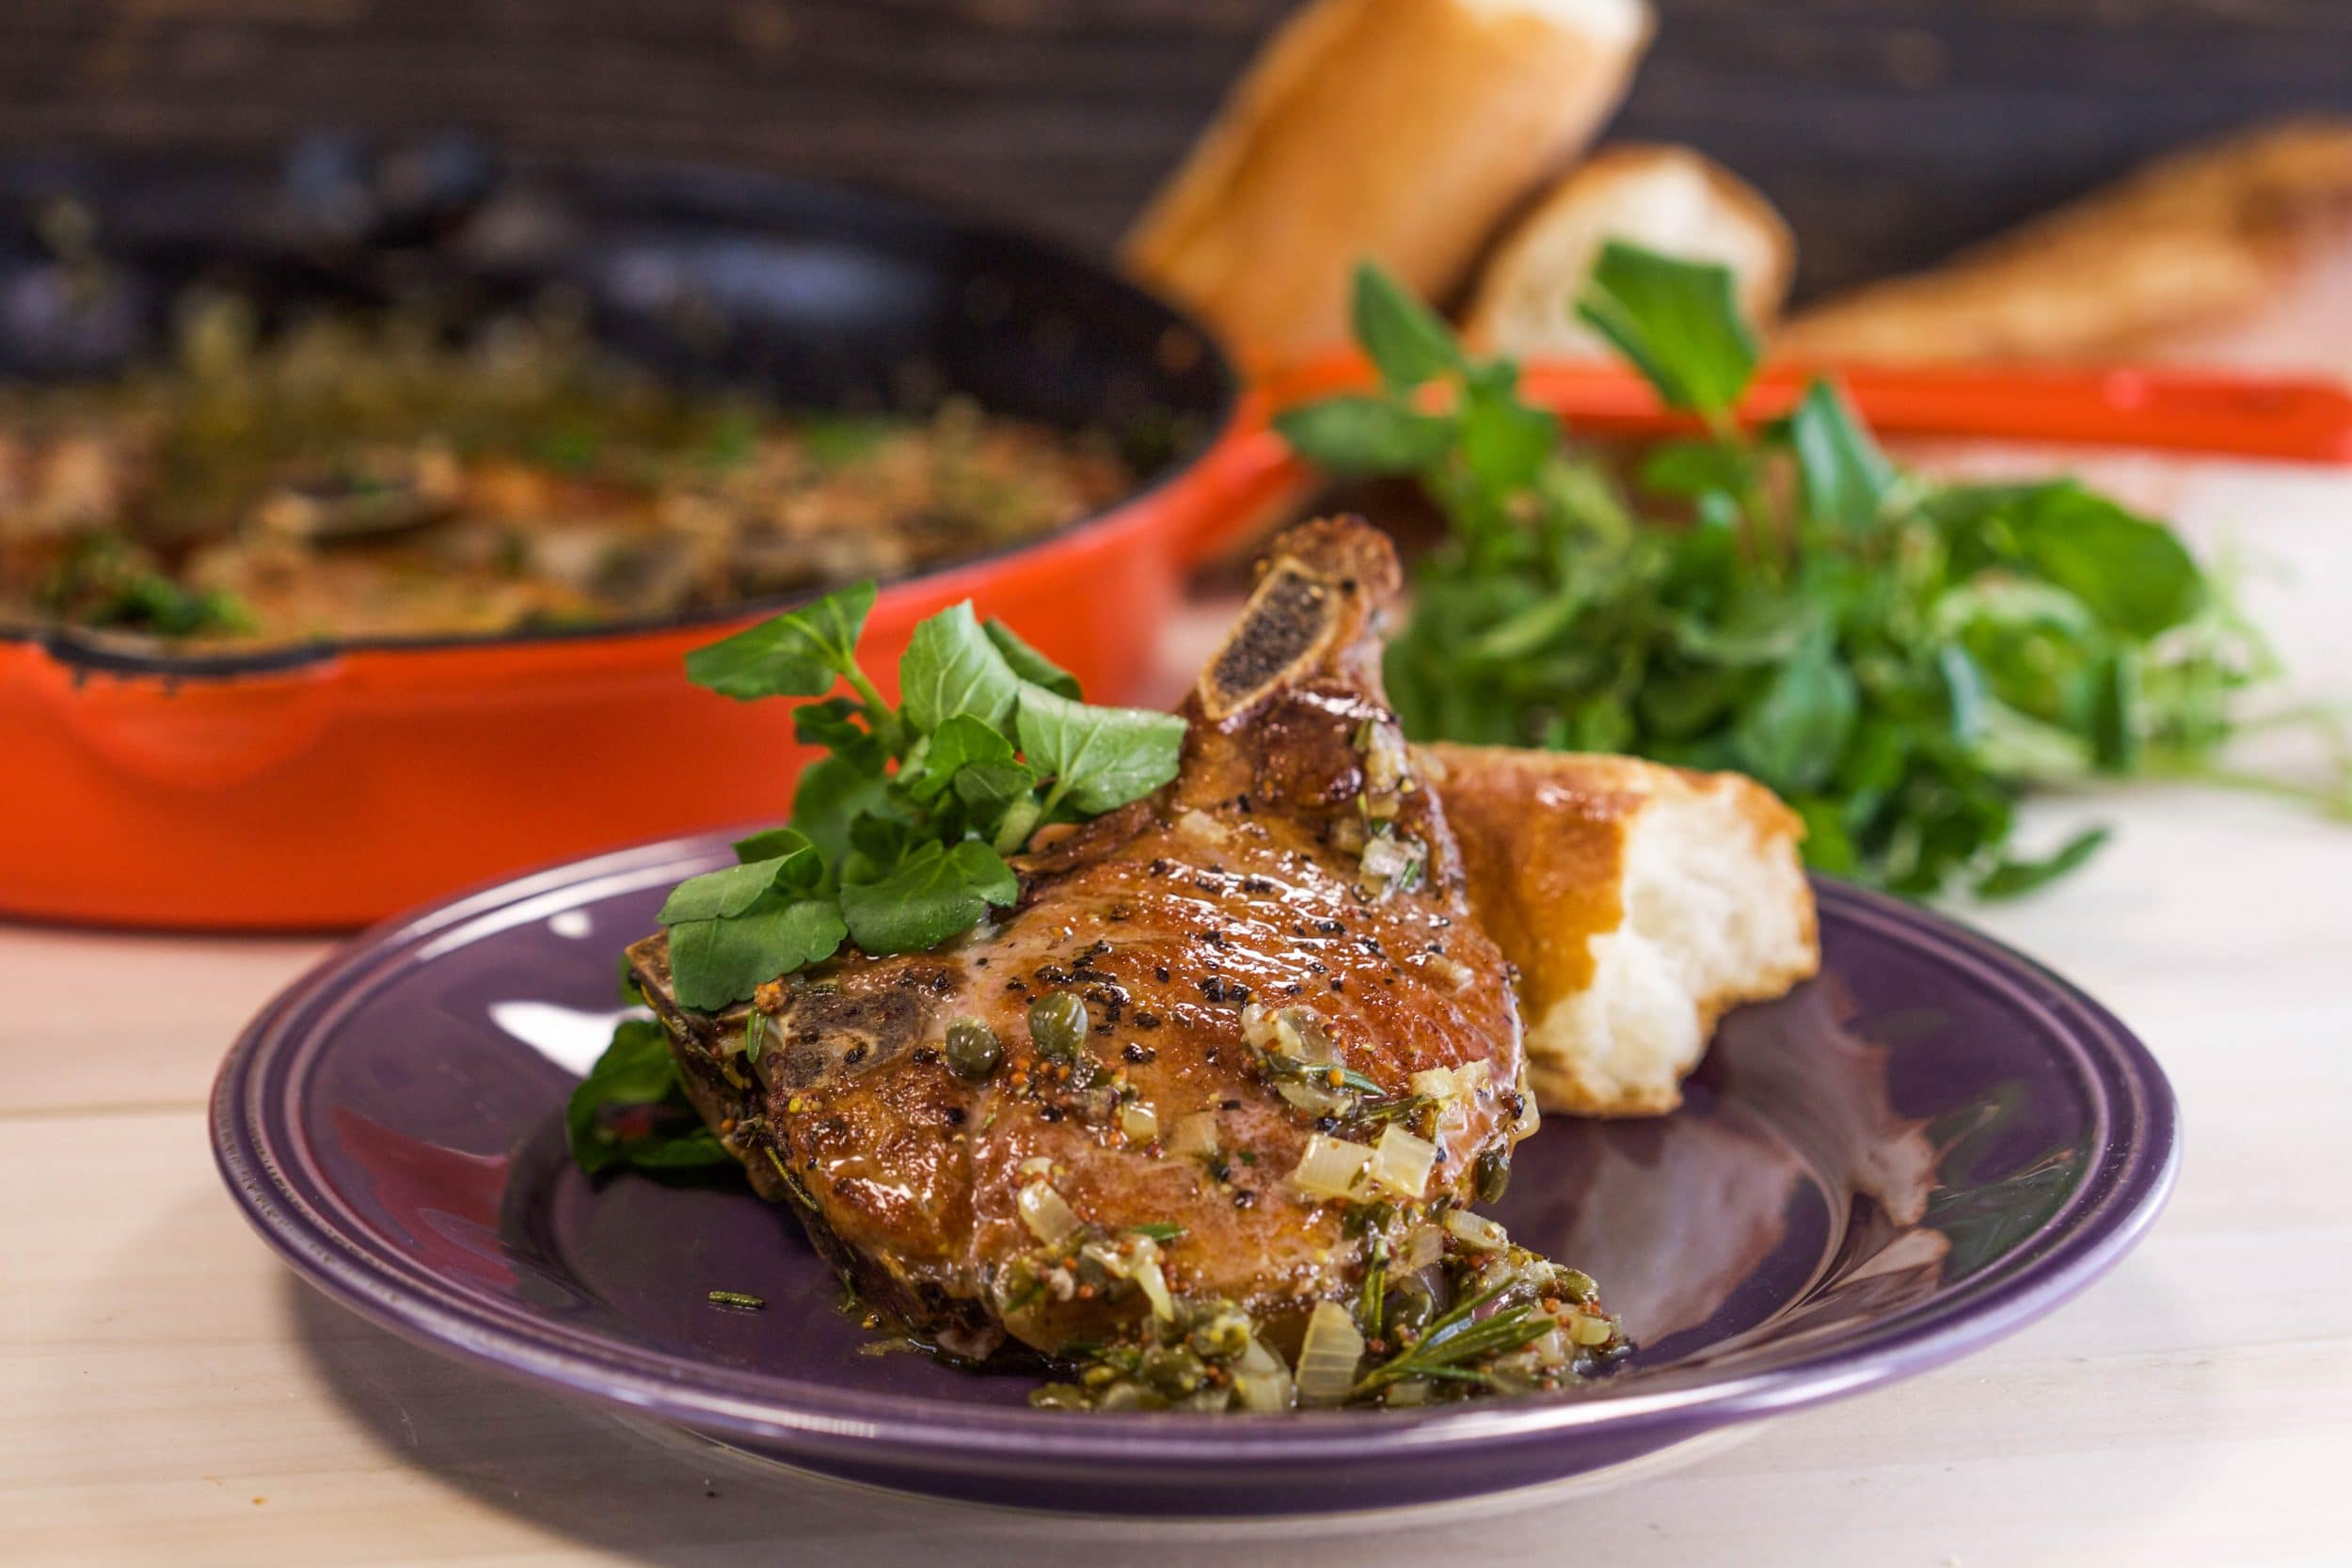 Bone-in Pork Chops with Shallots, Mustard sauce and Watercress